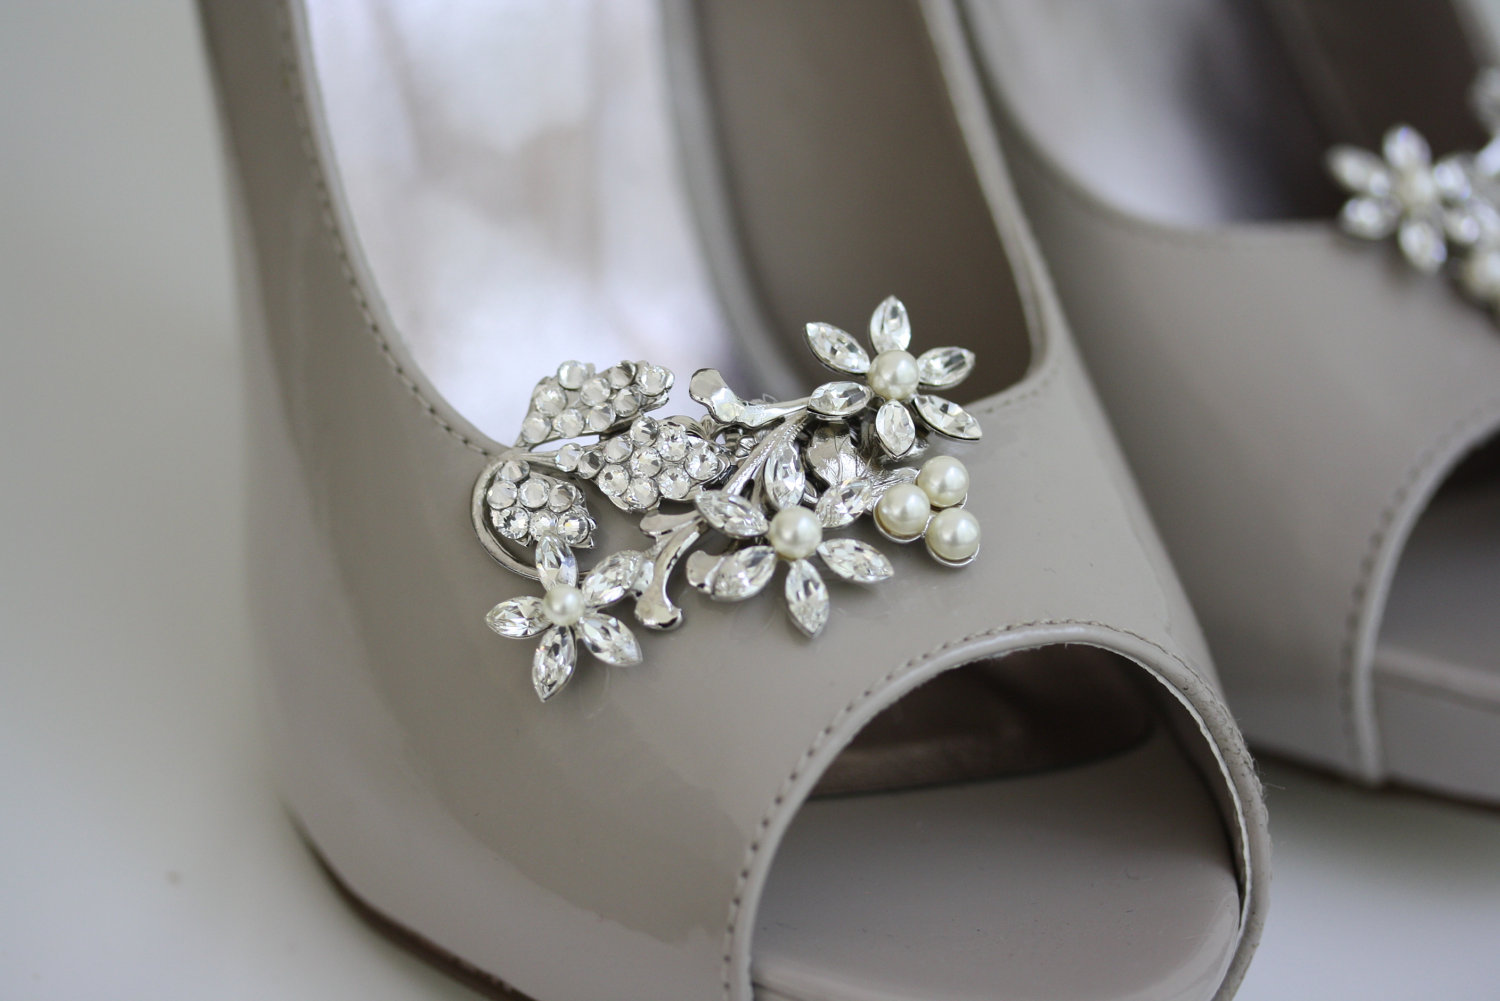 Bridal Shoes Low Heel 2017 Uk Wedges Flats Designer Photos Pics Images Wallpapers